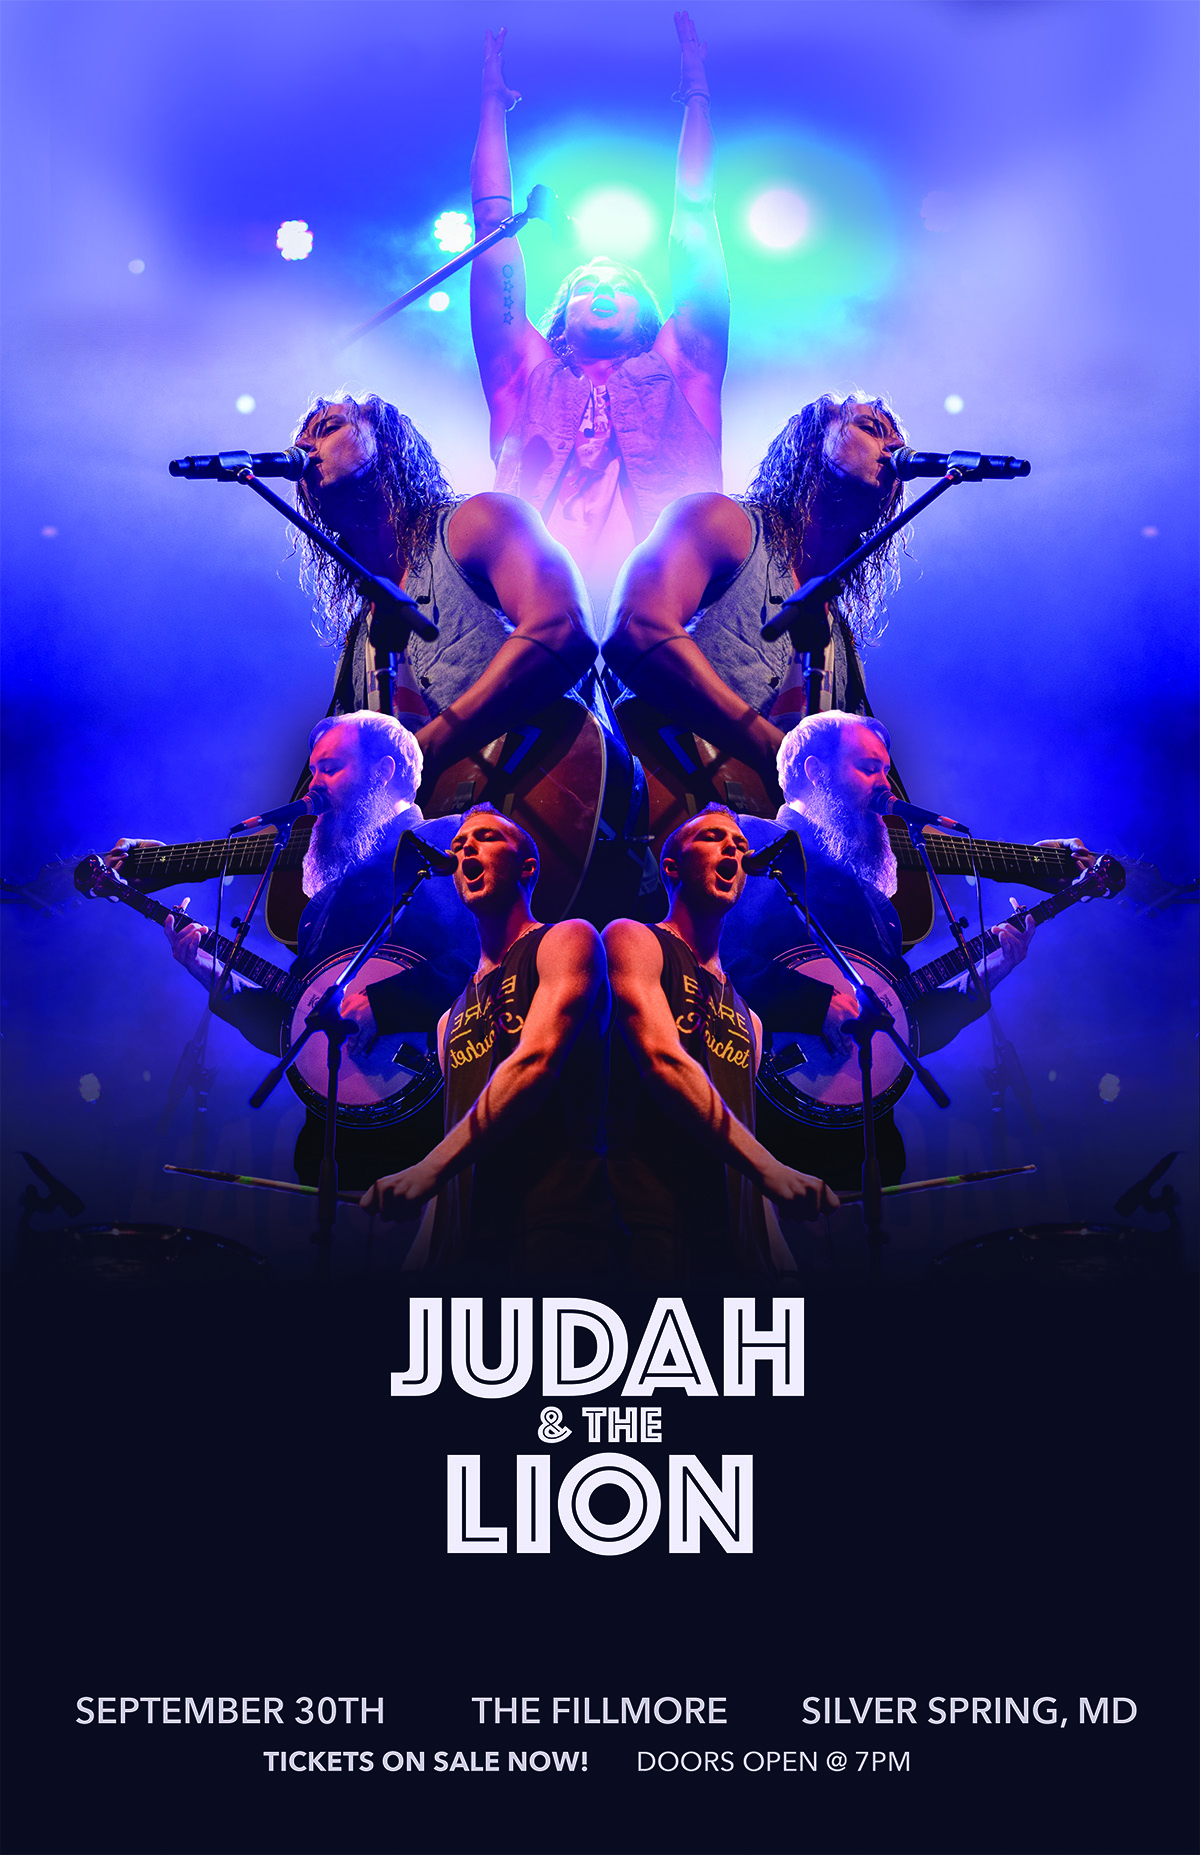 Judah & The Lion Poster